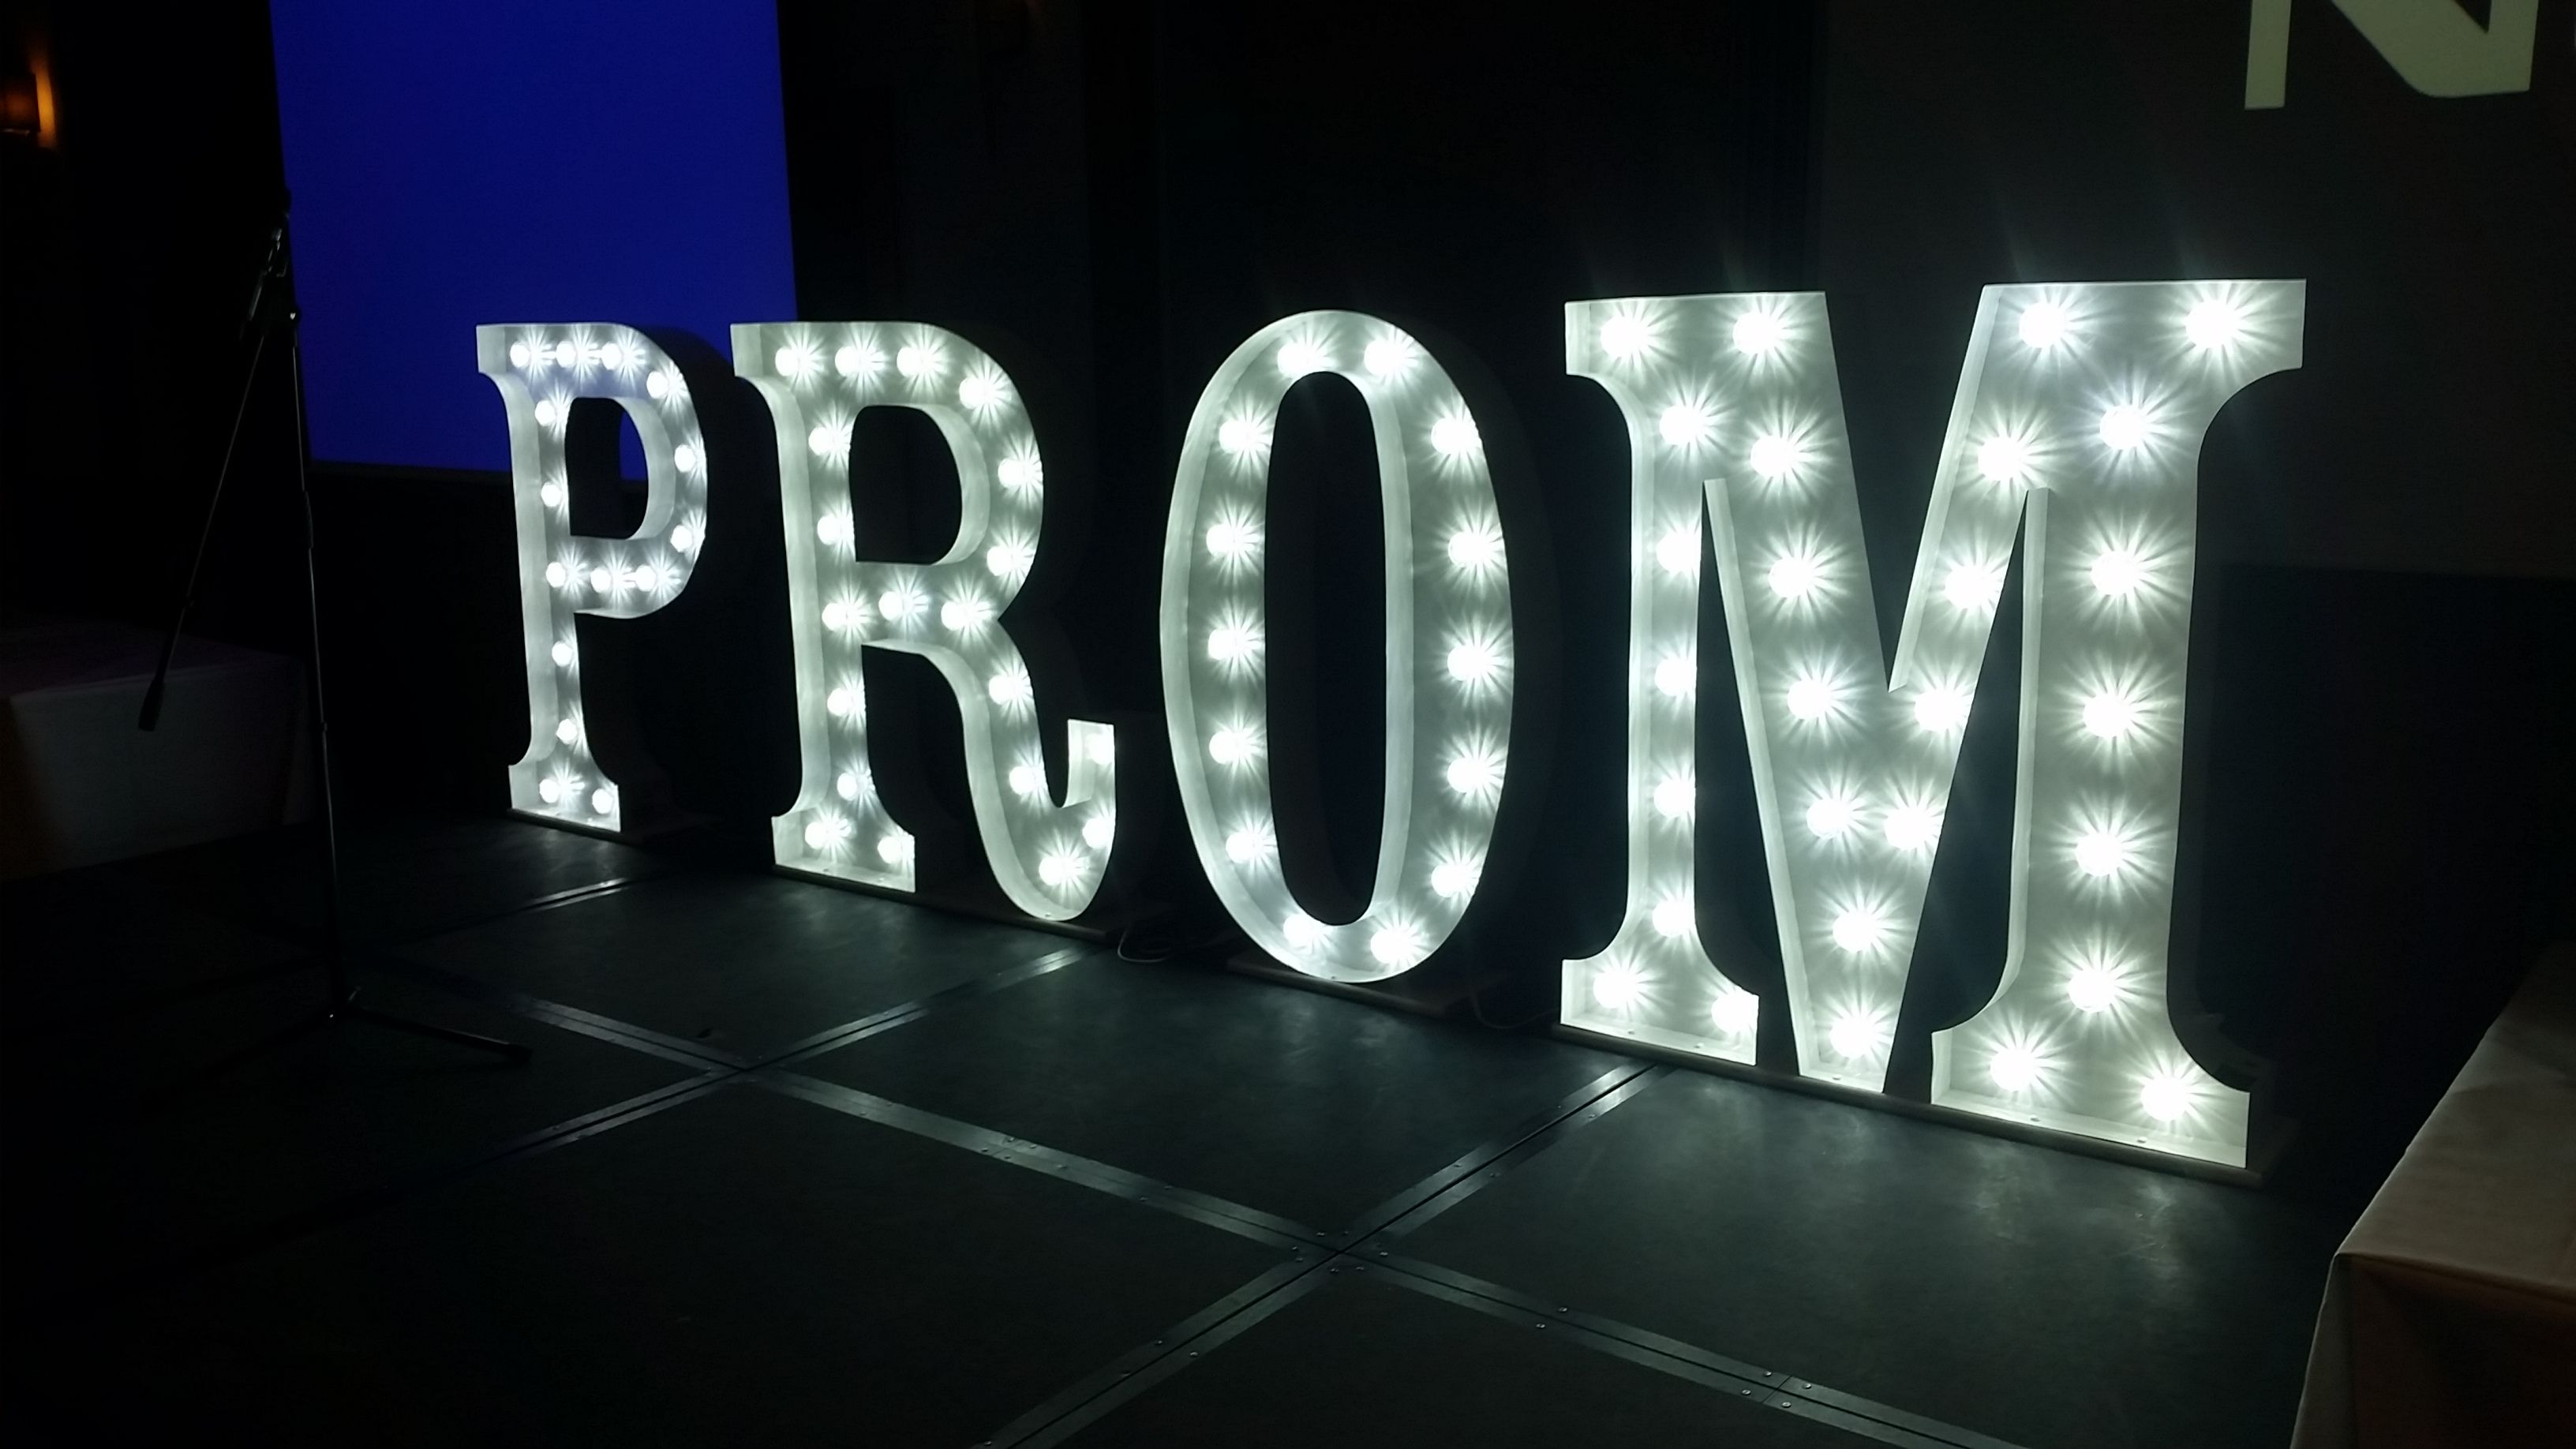 book your light up prom letters for your prom next summer With prom light up letters